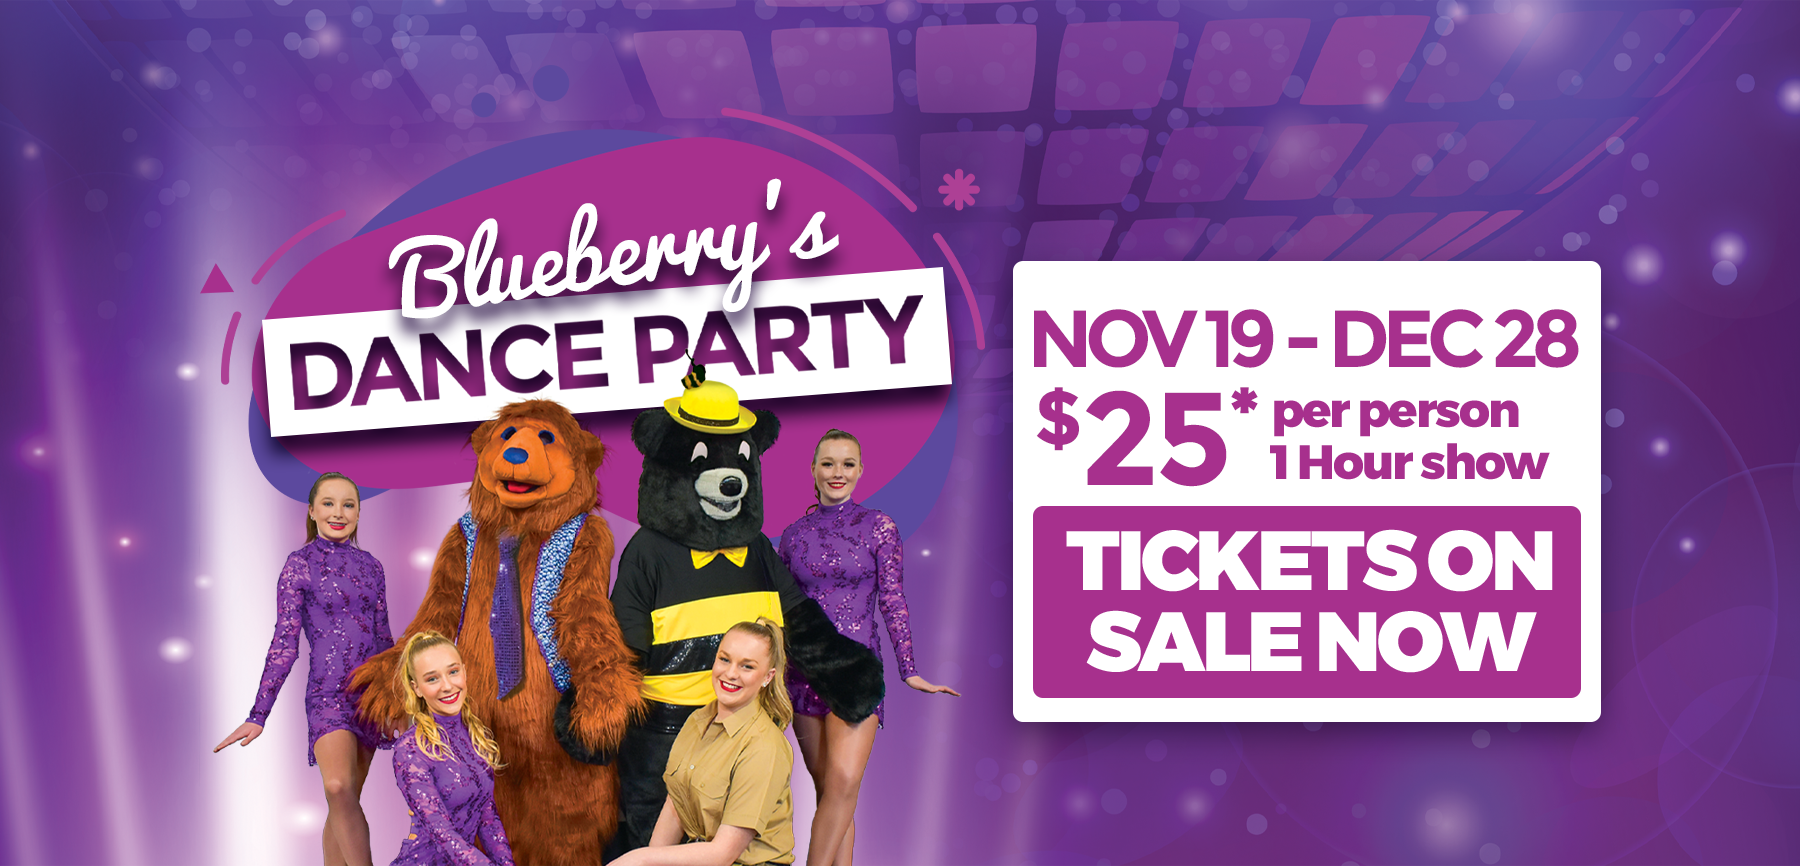 Blueberry's Dance Party - Tickets on sale now